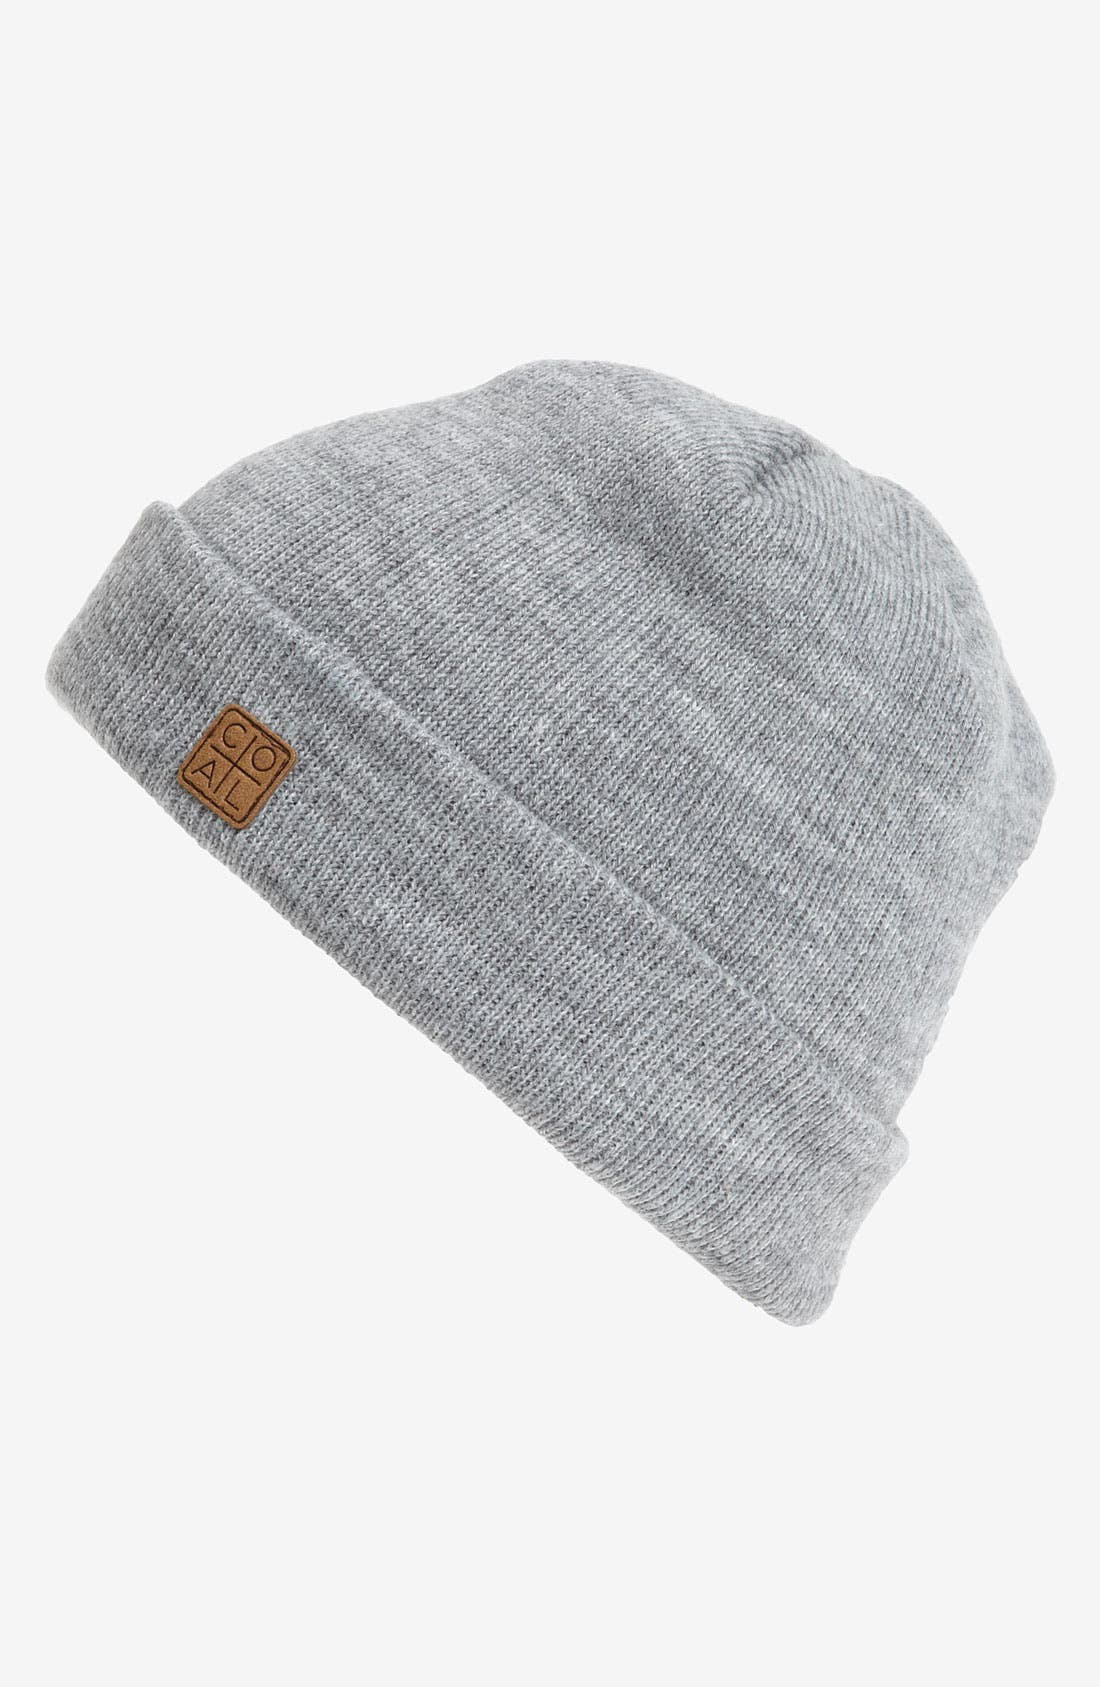 Main Image - Coal 'Harbor' Knit Cap